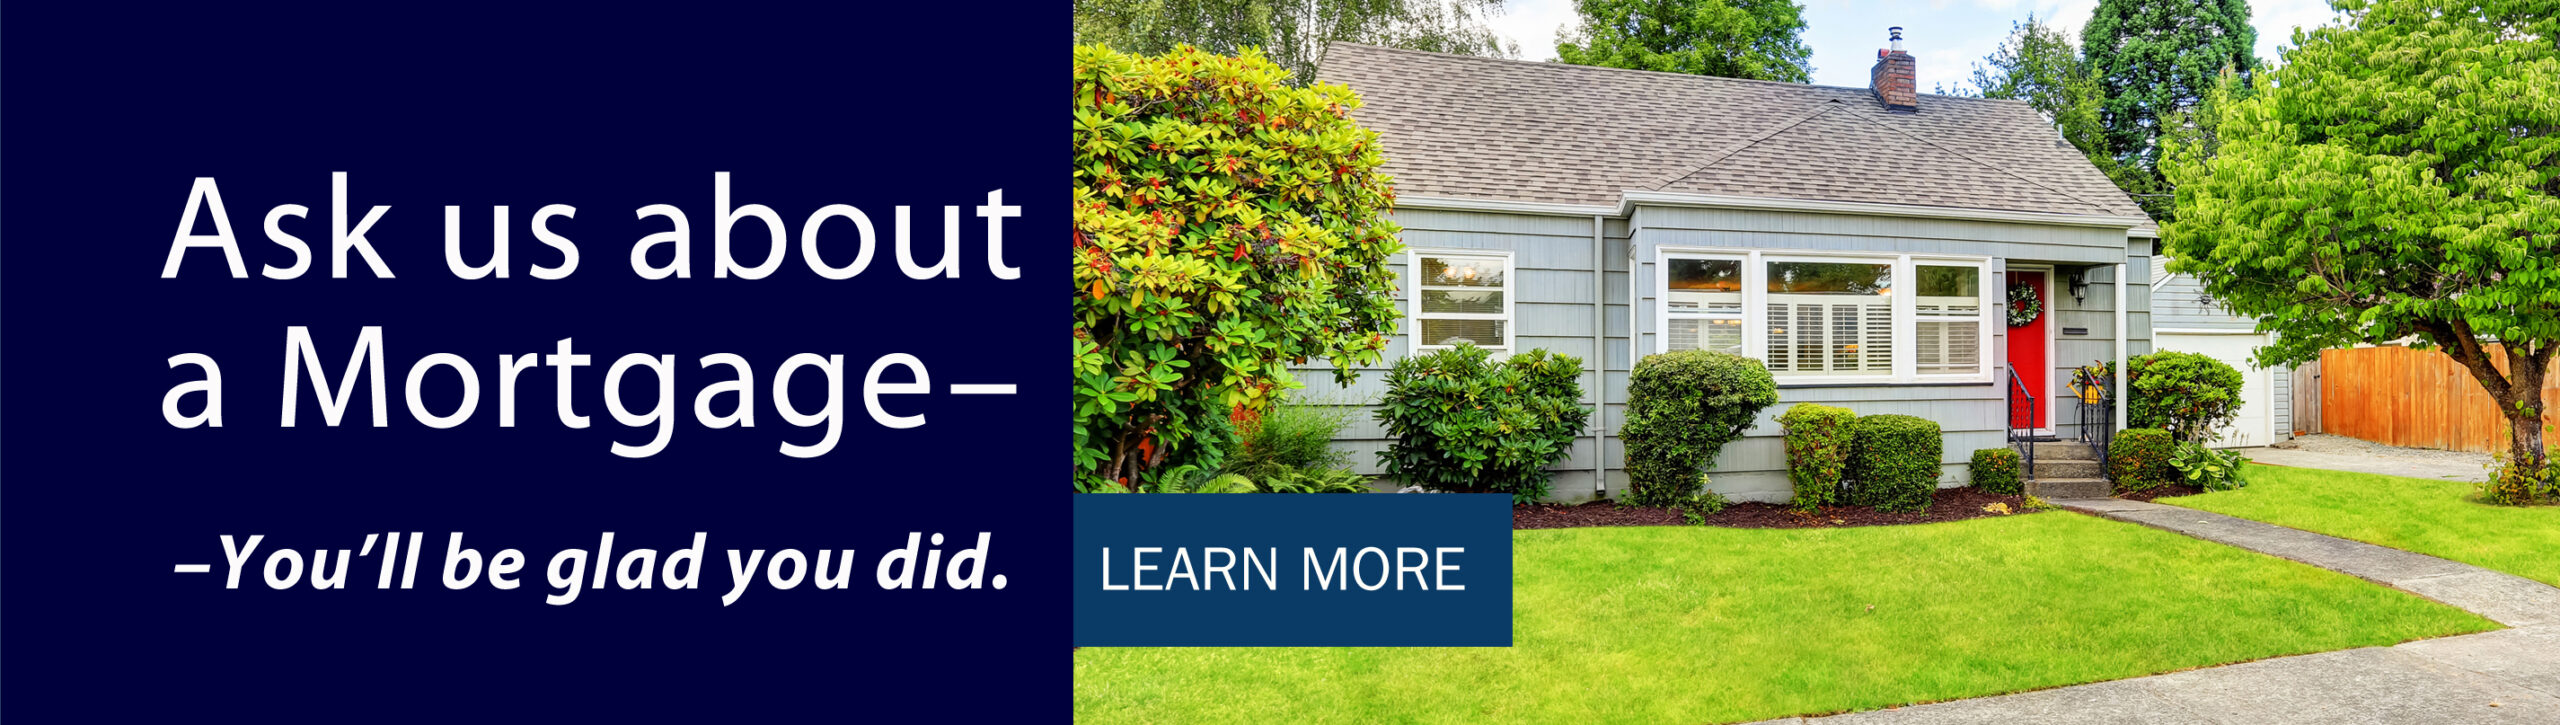 As us about a mortgage, you'll be glad you did.